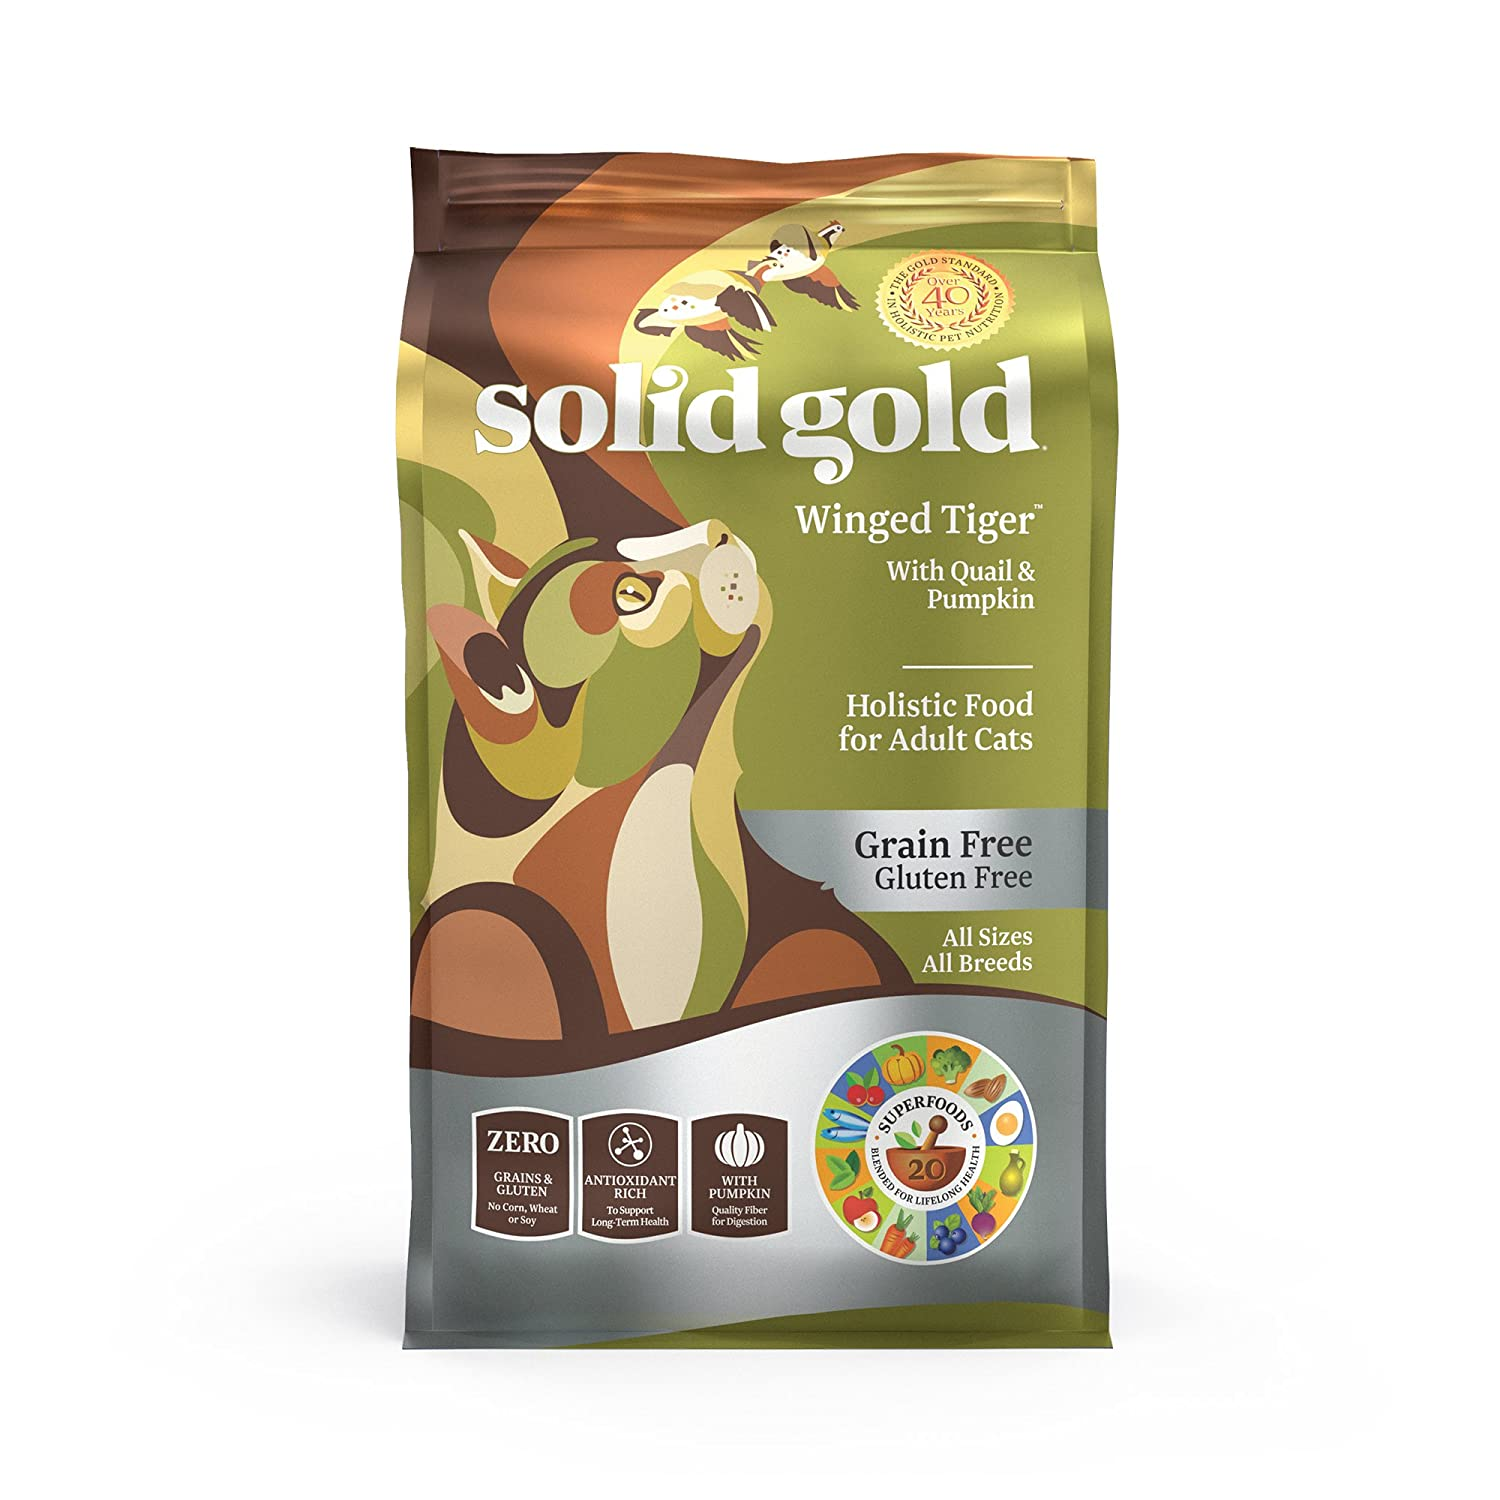 Solid Gold - Winged Tiger - Real Quail & Pumpkin - Grain-Free & Gluten-Free - Holistic Sensitive Stomach dry cat food for Adult & Senior Cats